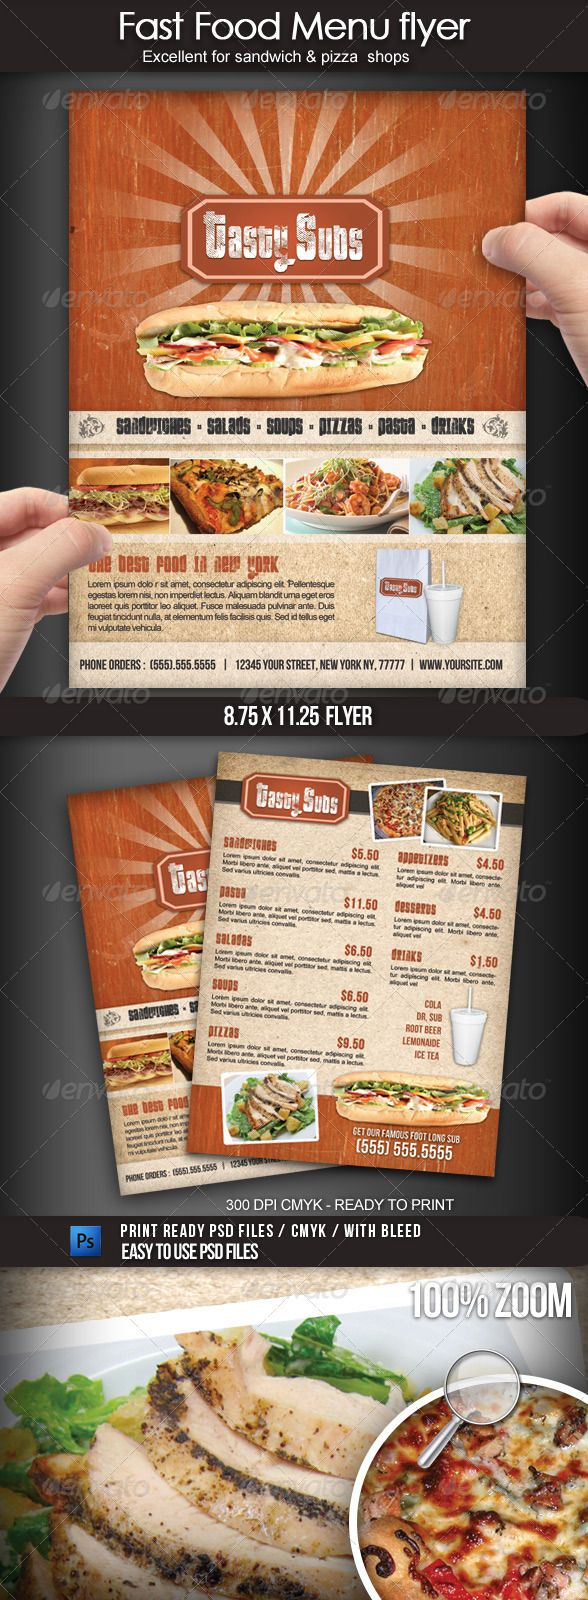 Fast Food Menu Flyer | Fast food menu, Food menu template and Food ...